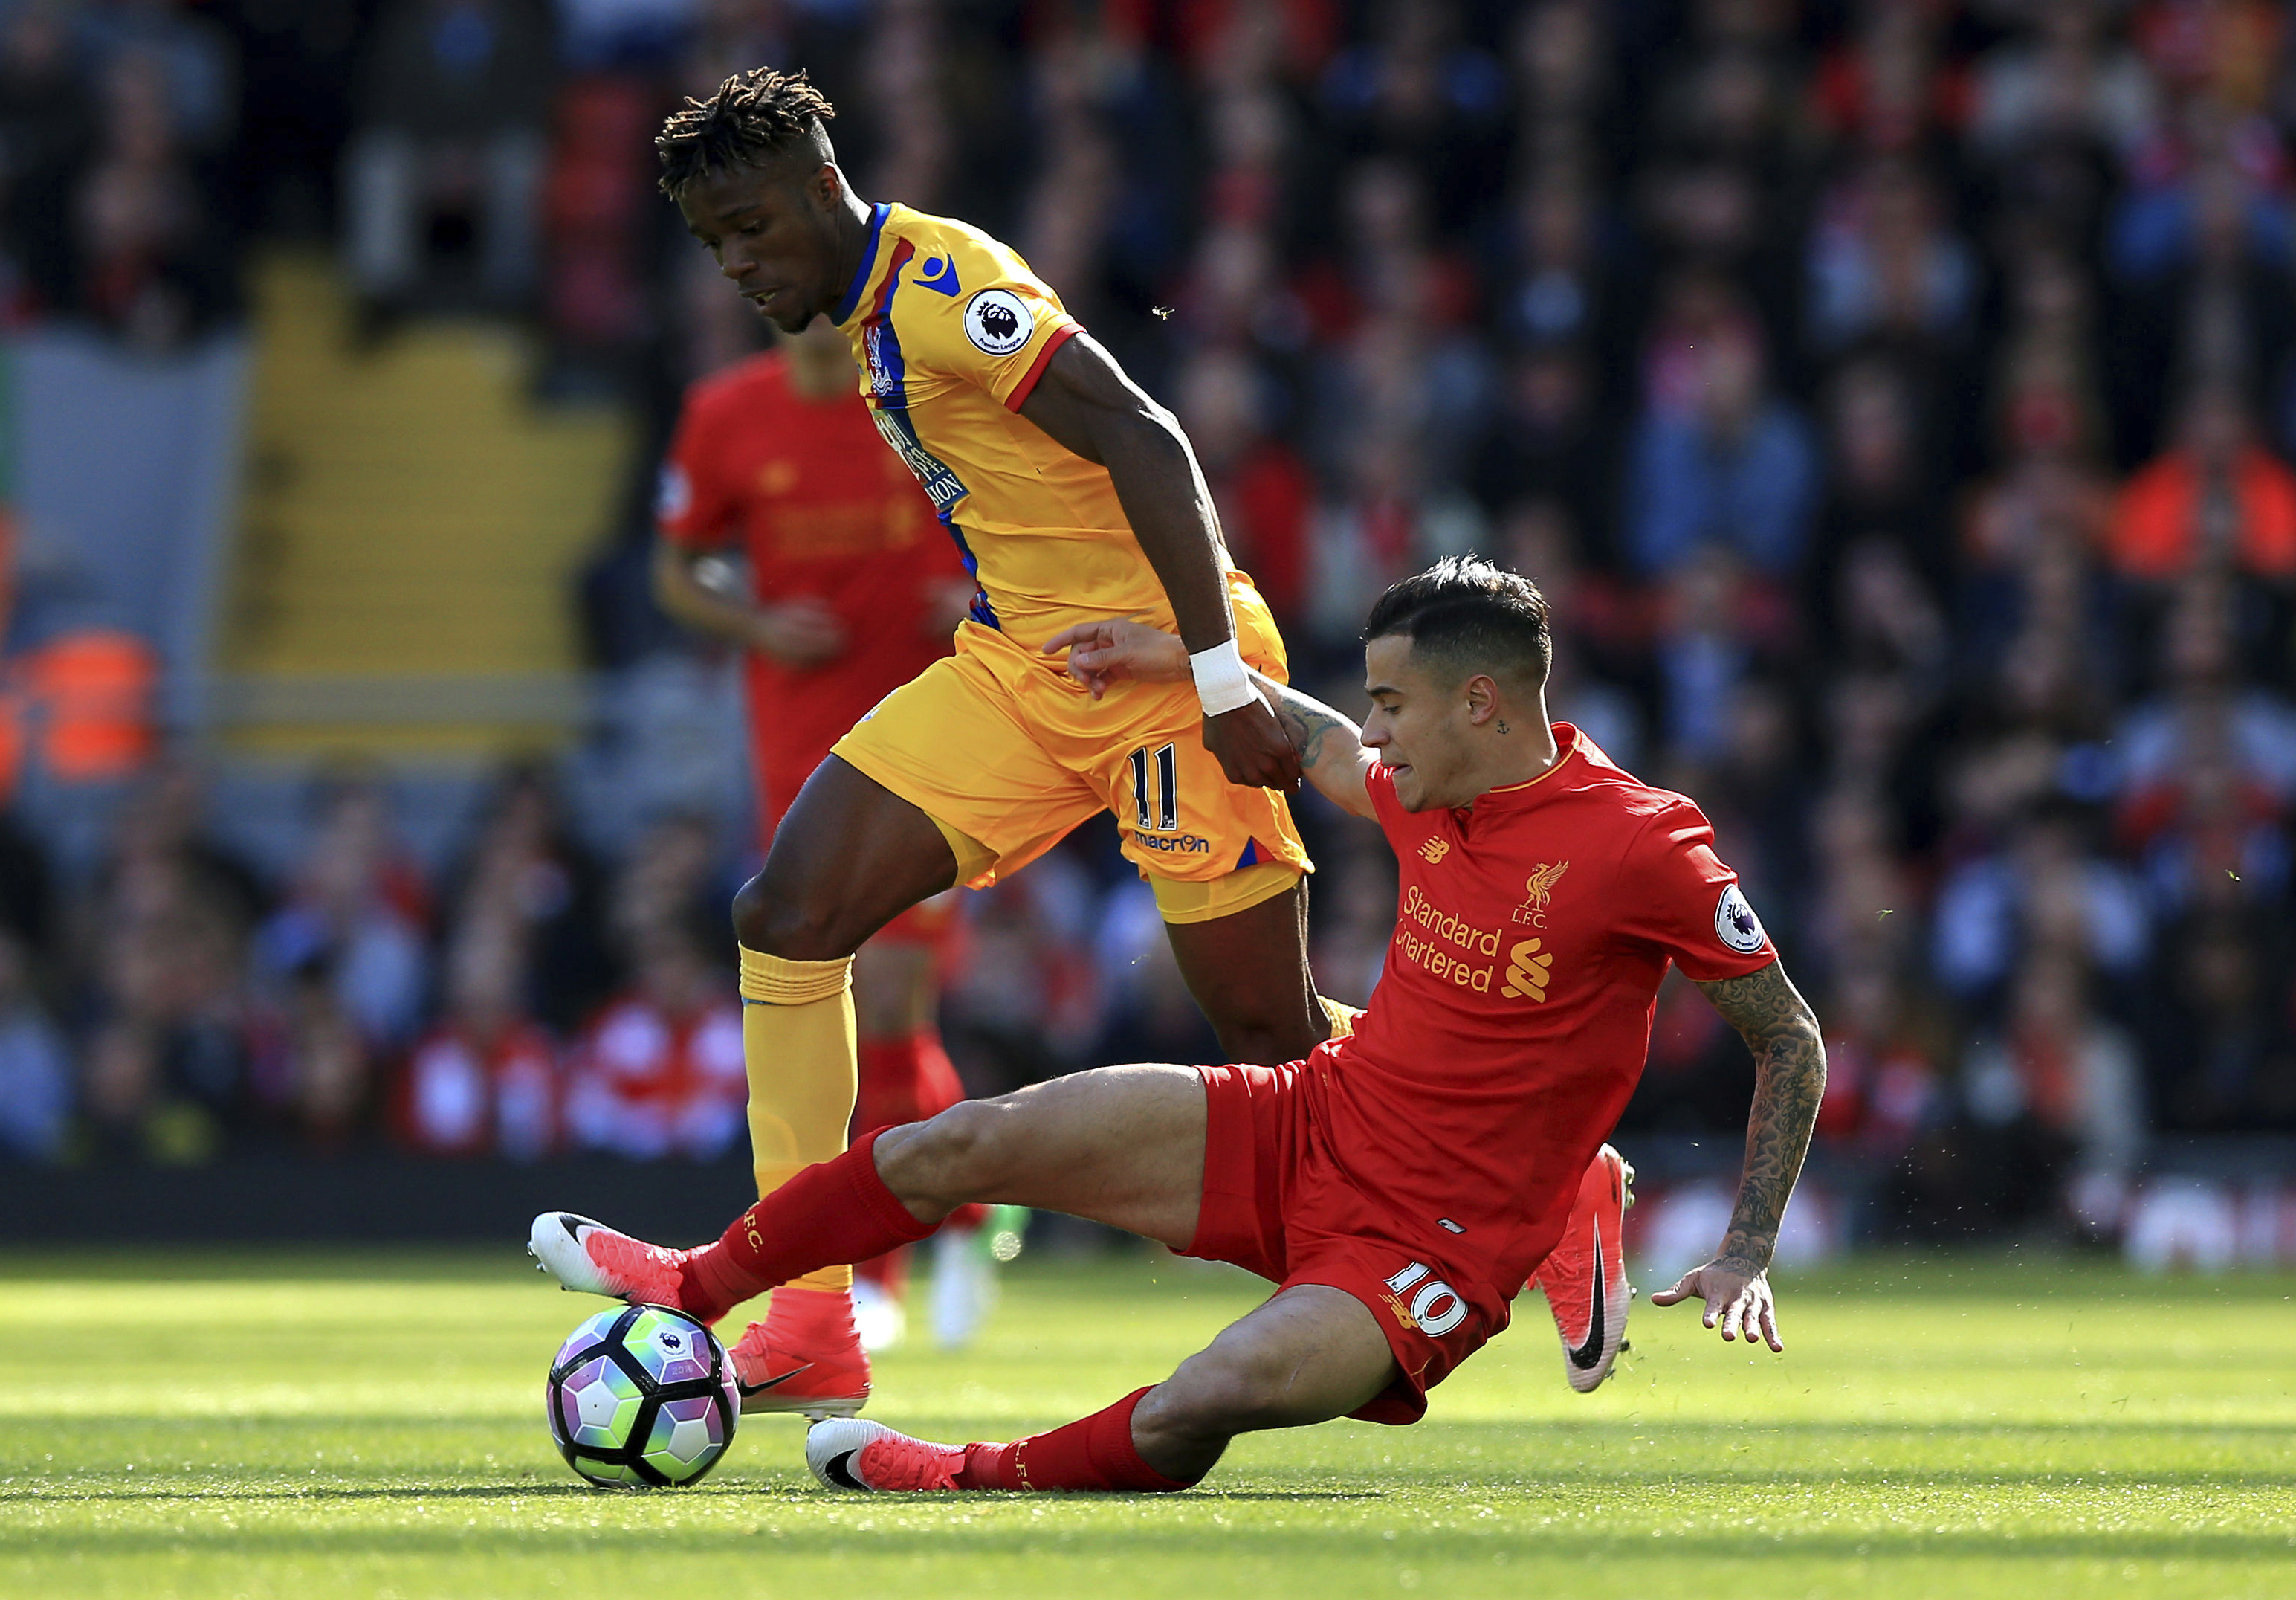 Crystal Palace's Wilfried Zaha, left, and Liverpool's Philippe Coutinho battle for the ball during the English Premier League soccer match against Crystal Palace at Anfield, Liverpool, Sunday April 23, 2017. (Peter Byrne/PA via AP)